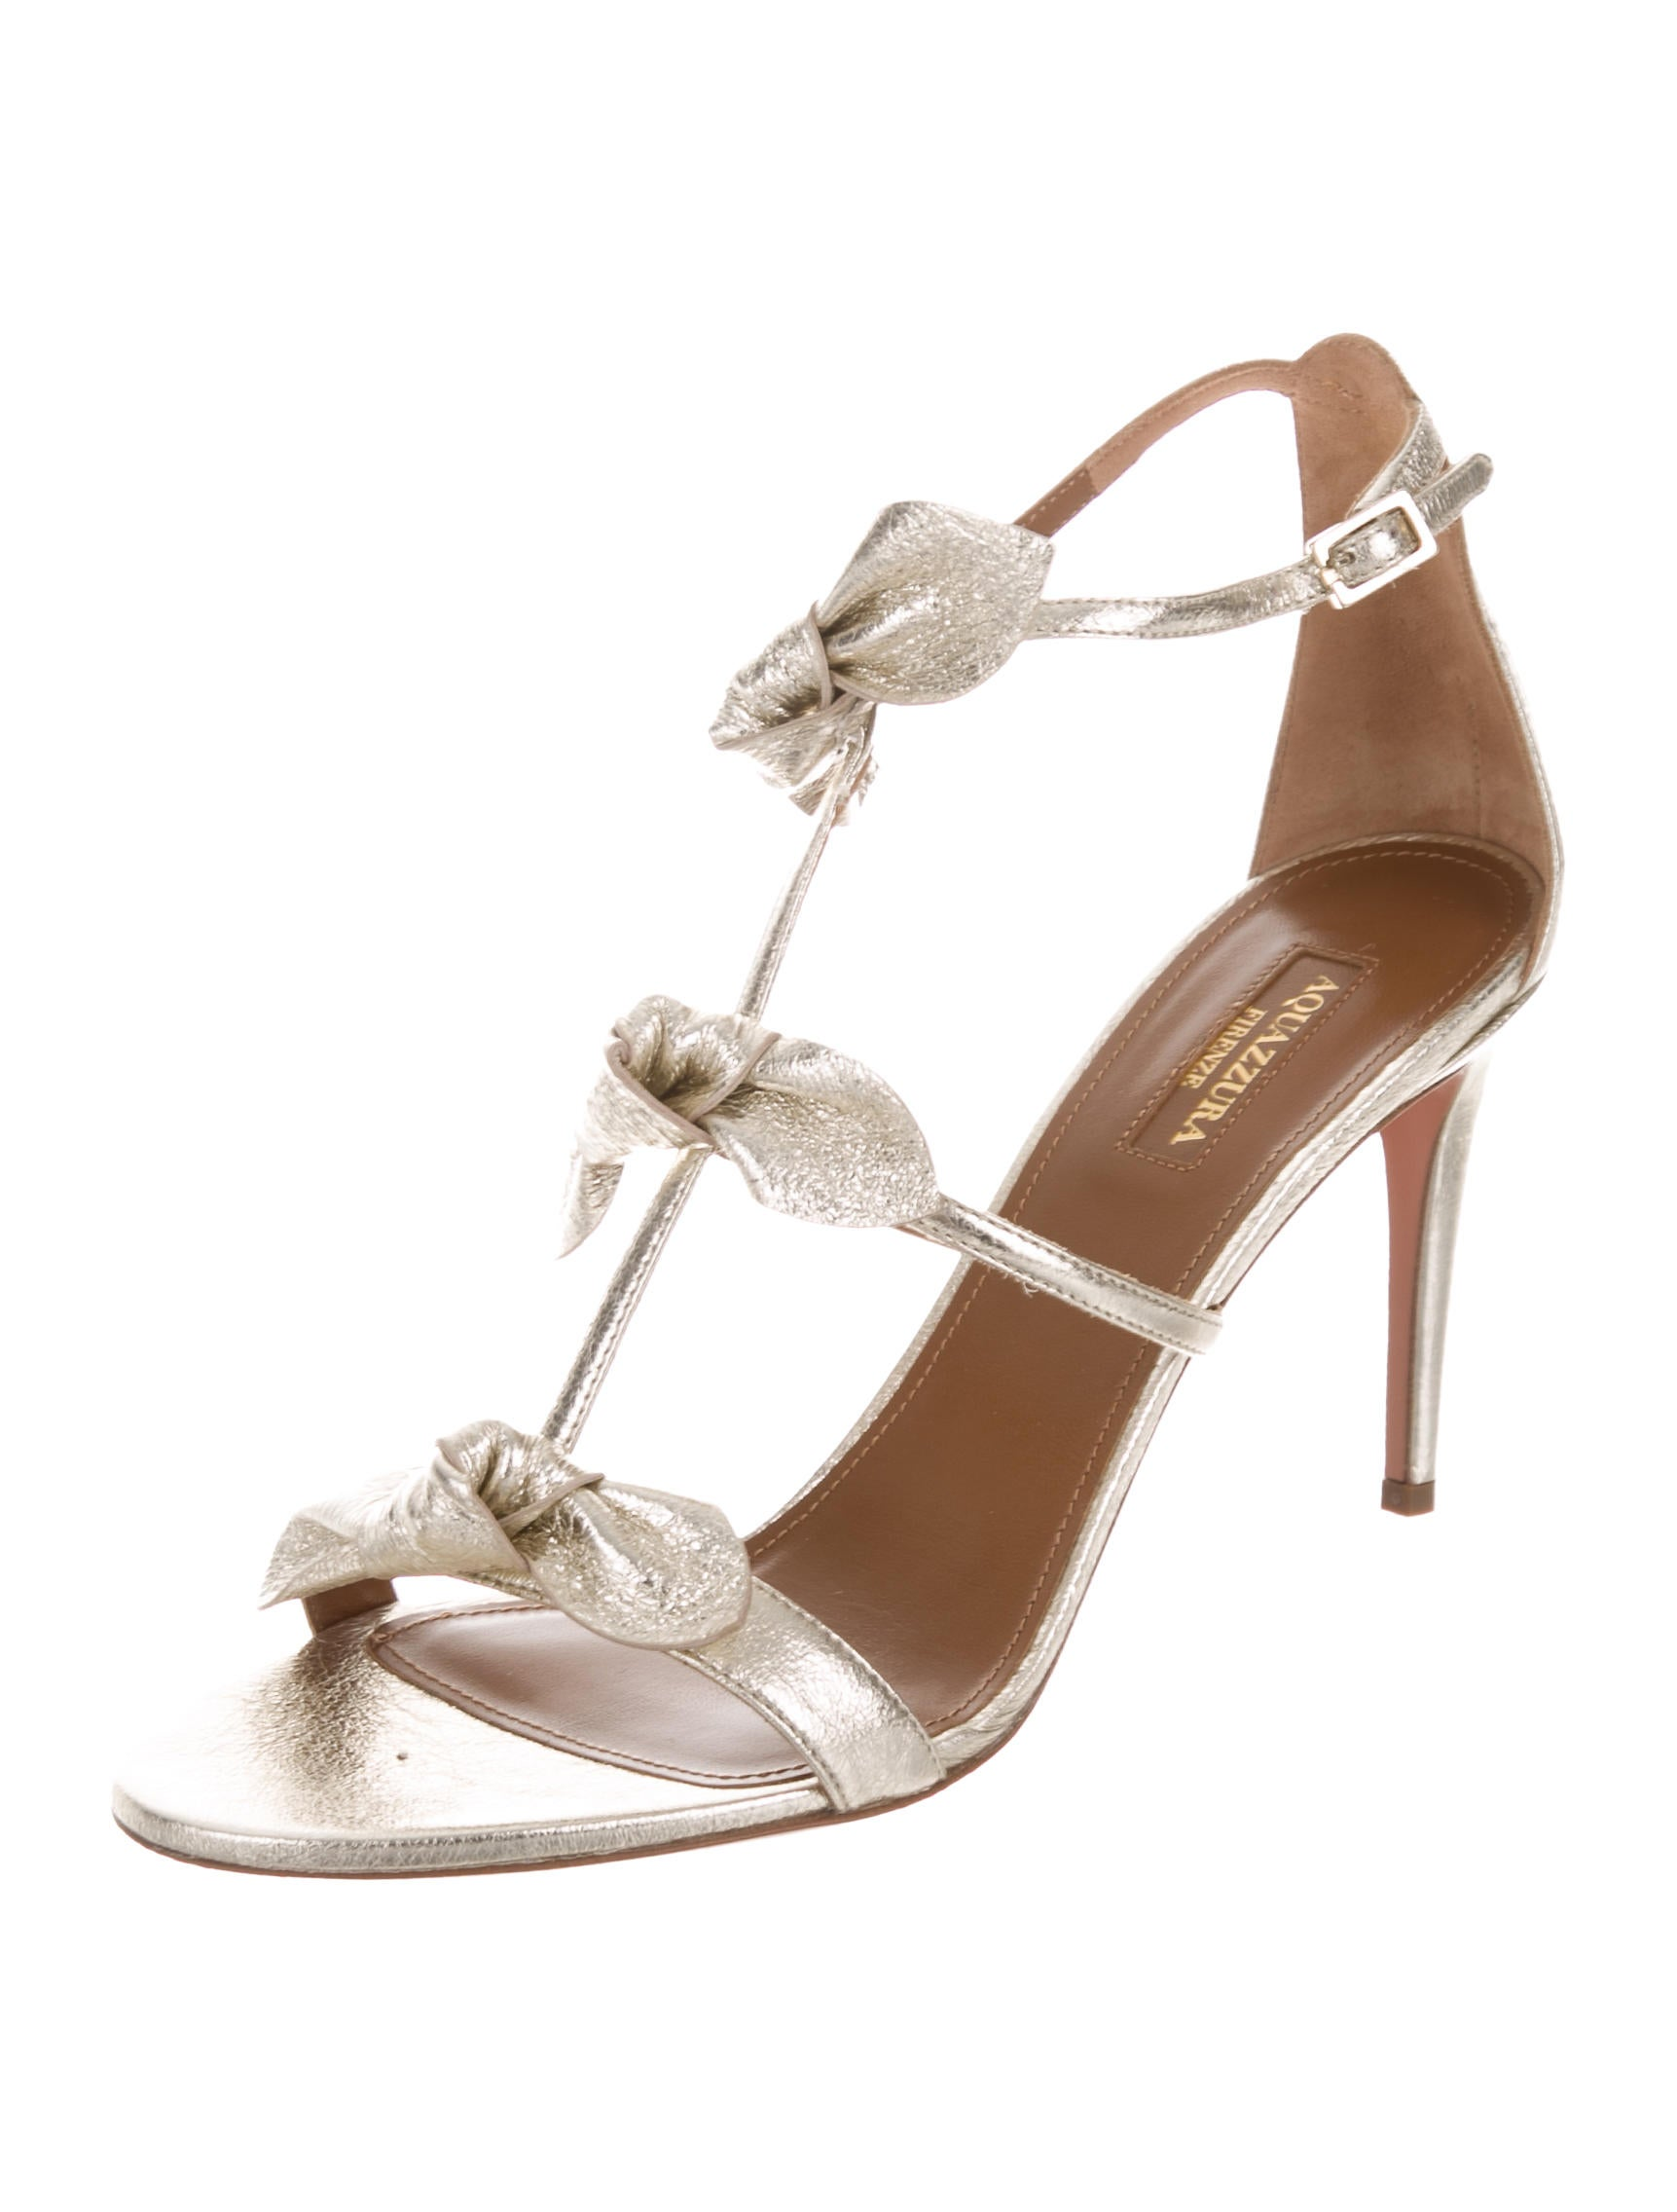 Aquazzura St. Tropez Metallic Sandals w/ Tags discount fashionable bA2yVT